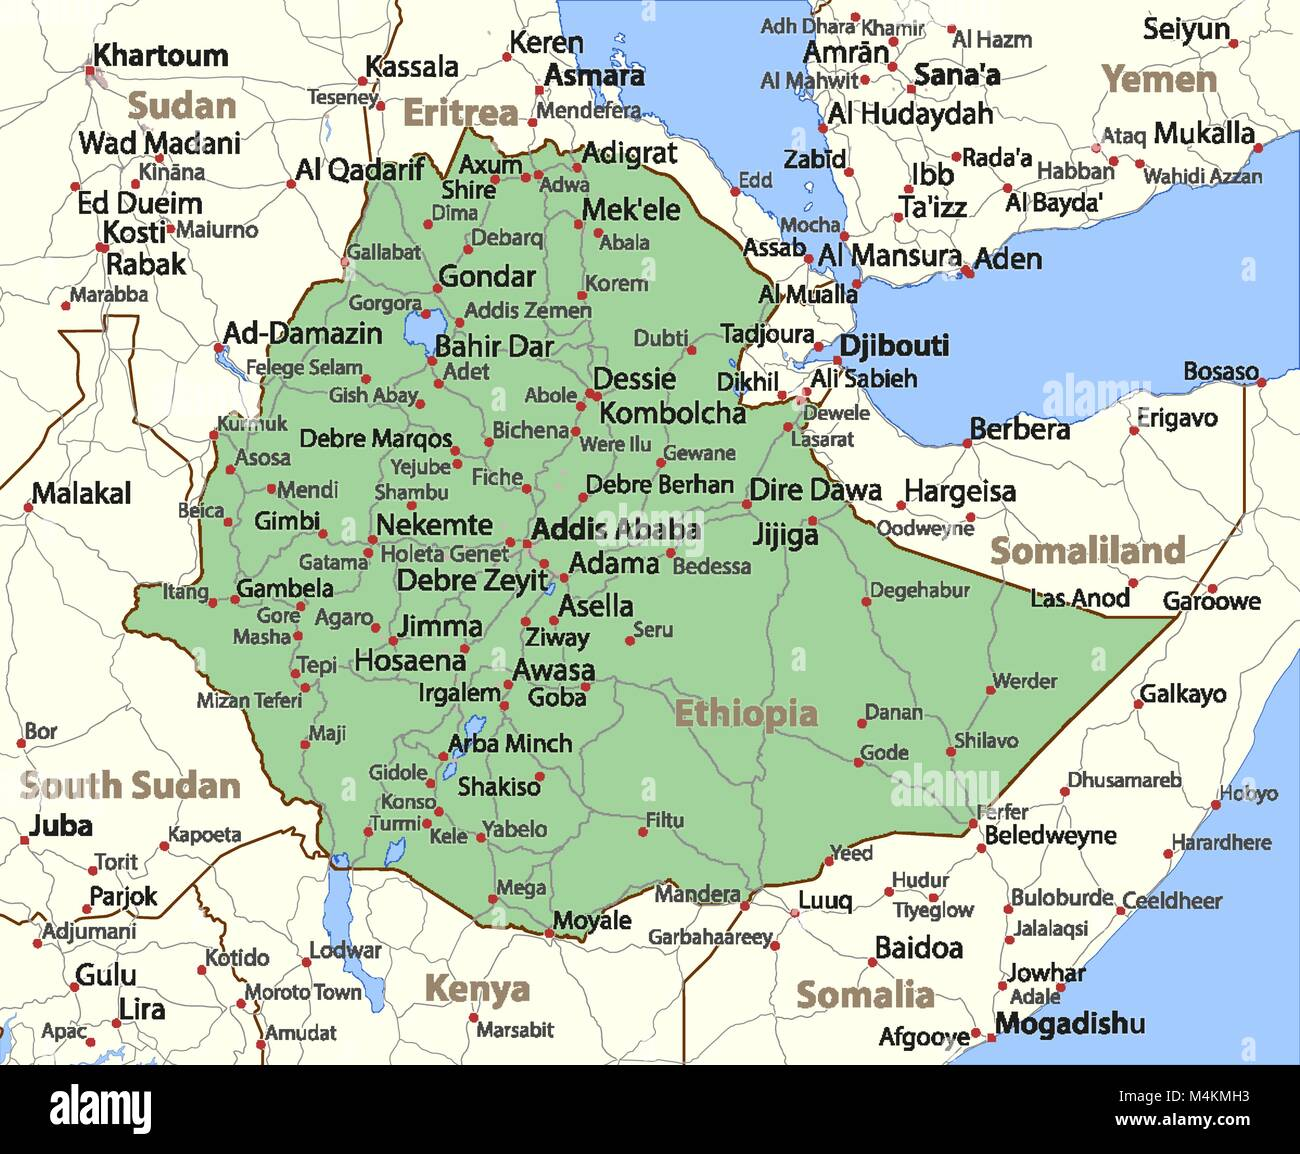 Outline map country ethiopia stock photos outline map country map of ethiopia shows country borders urban areas place names and roads gumiabroncs Choice Image